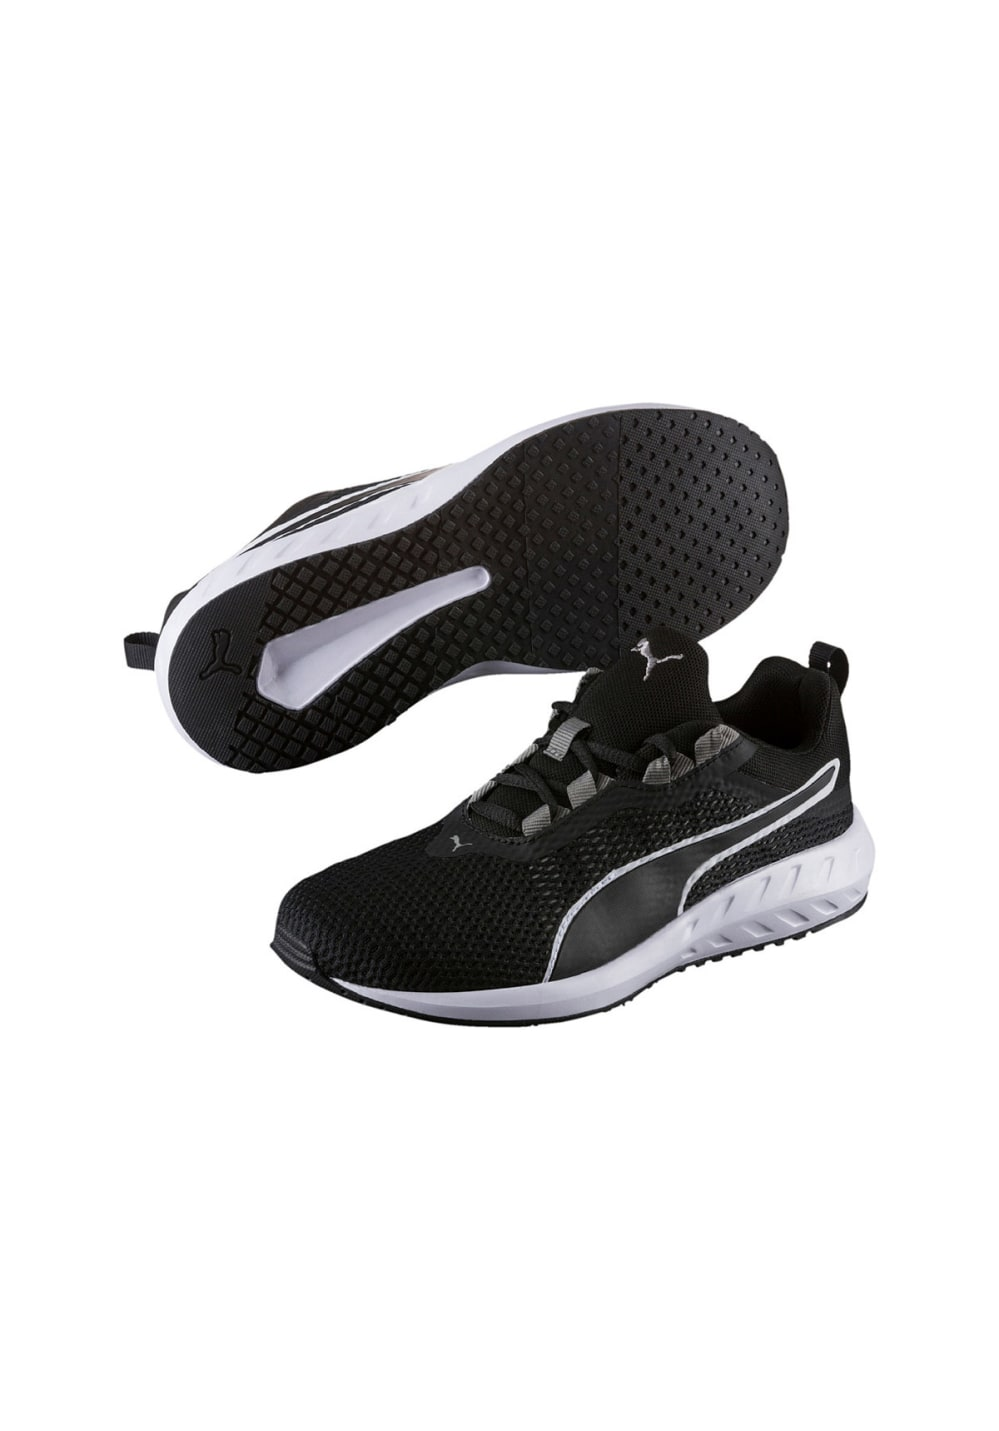 29c6eb90ed5b ... Puma Flare 2 - Running shoes for Women - Black. Back to Overview. -60%